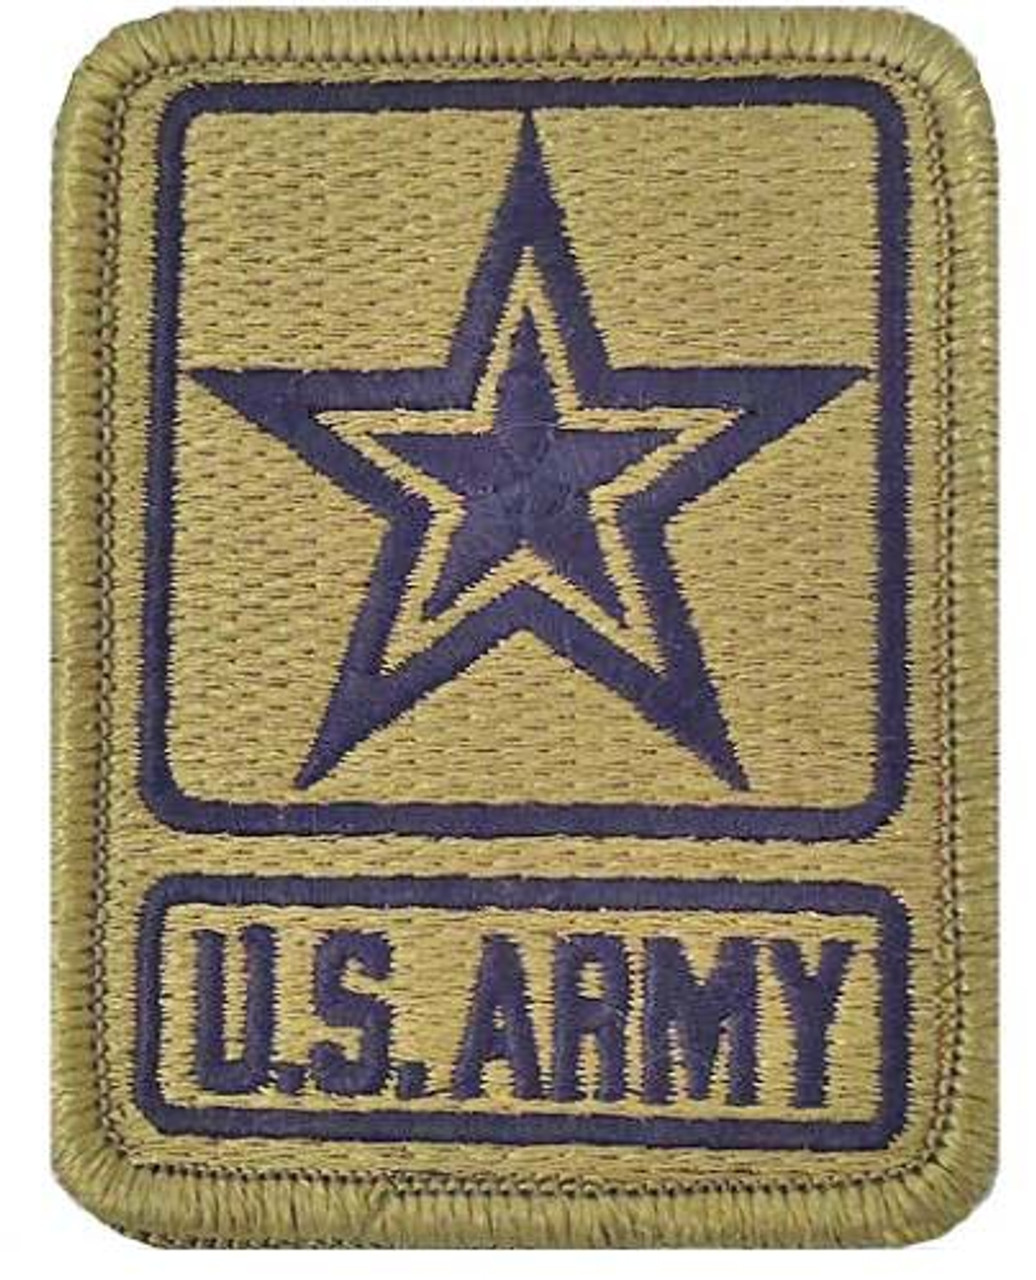 U.S. ARMY OCP Patch - With Hook Fastener